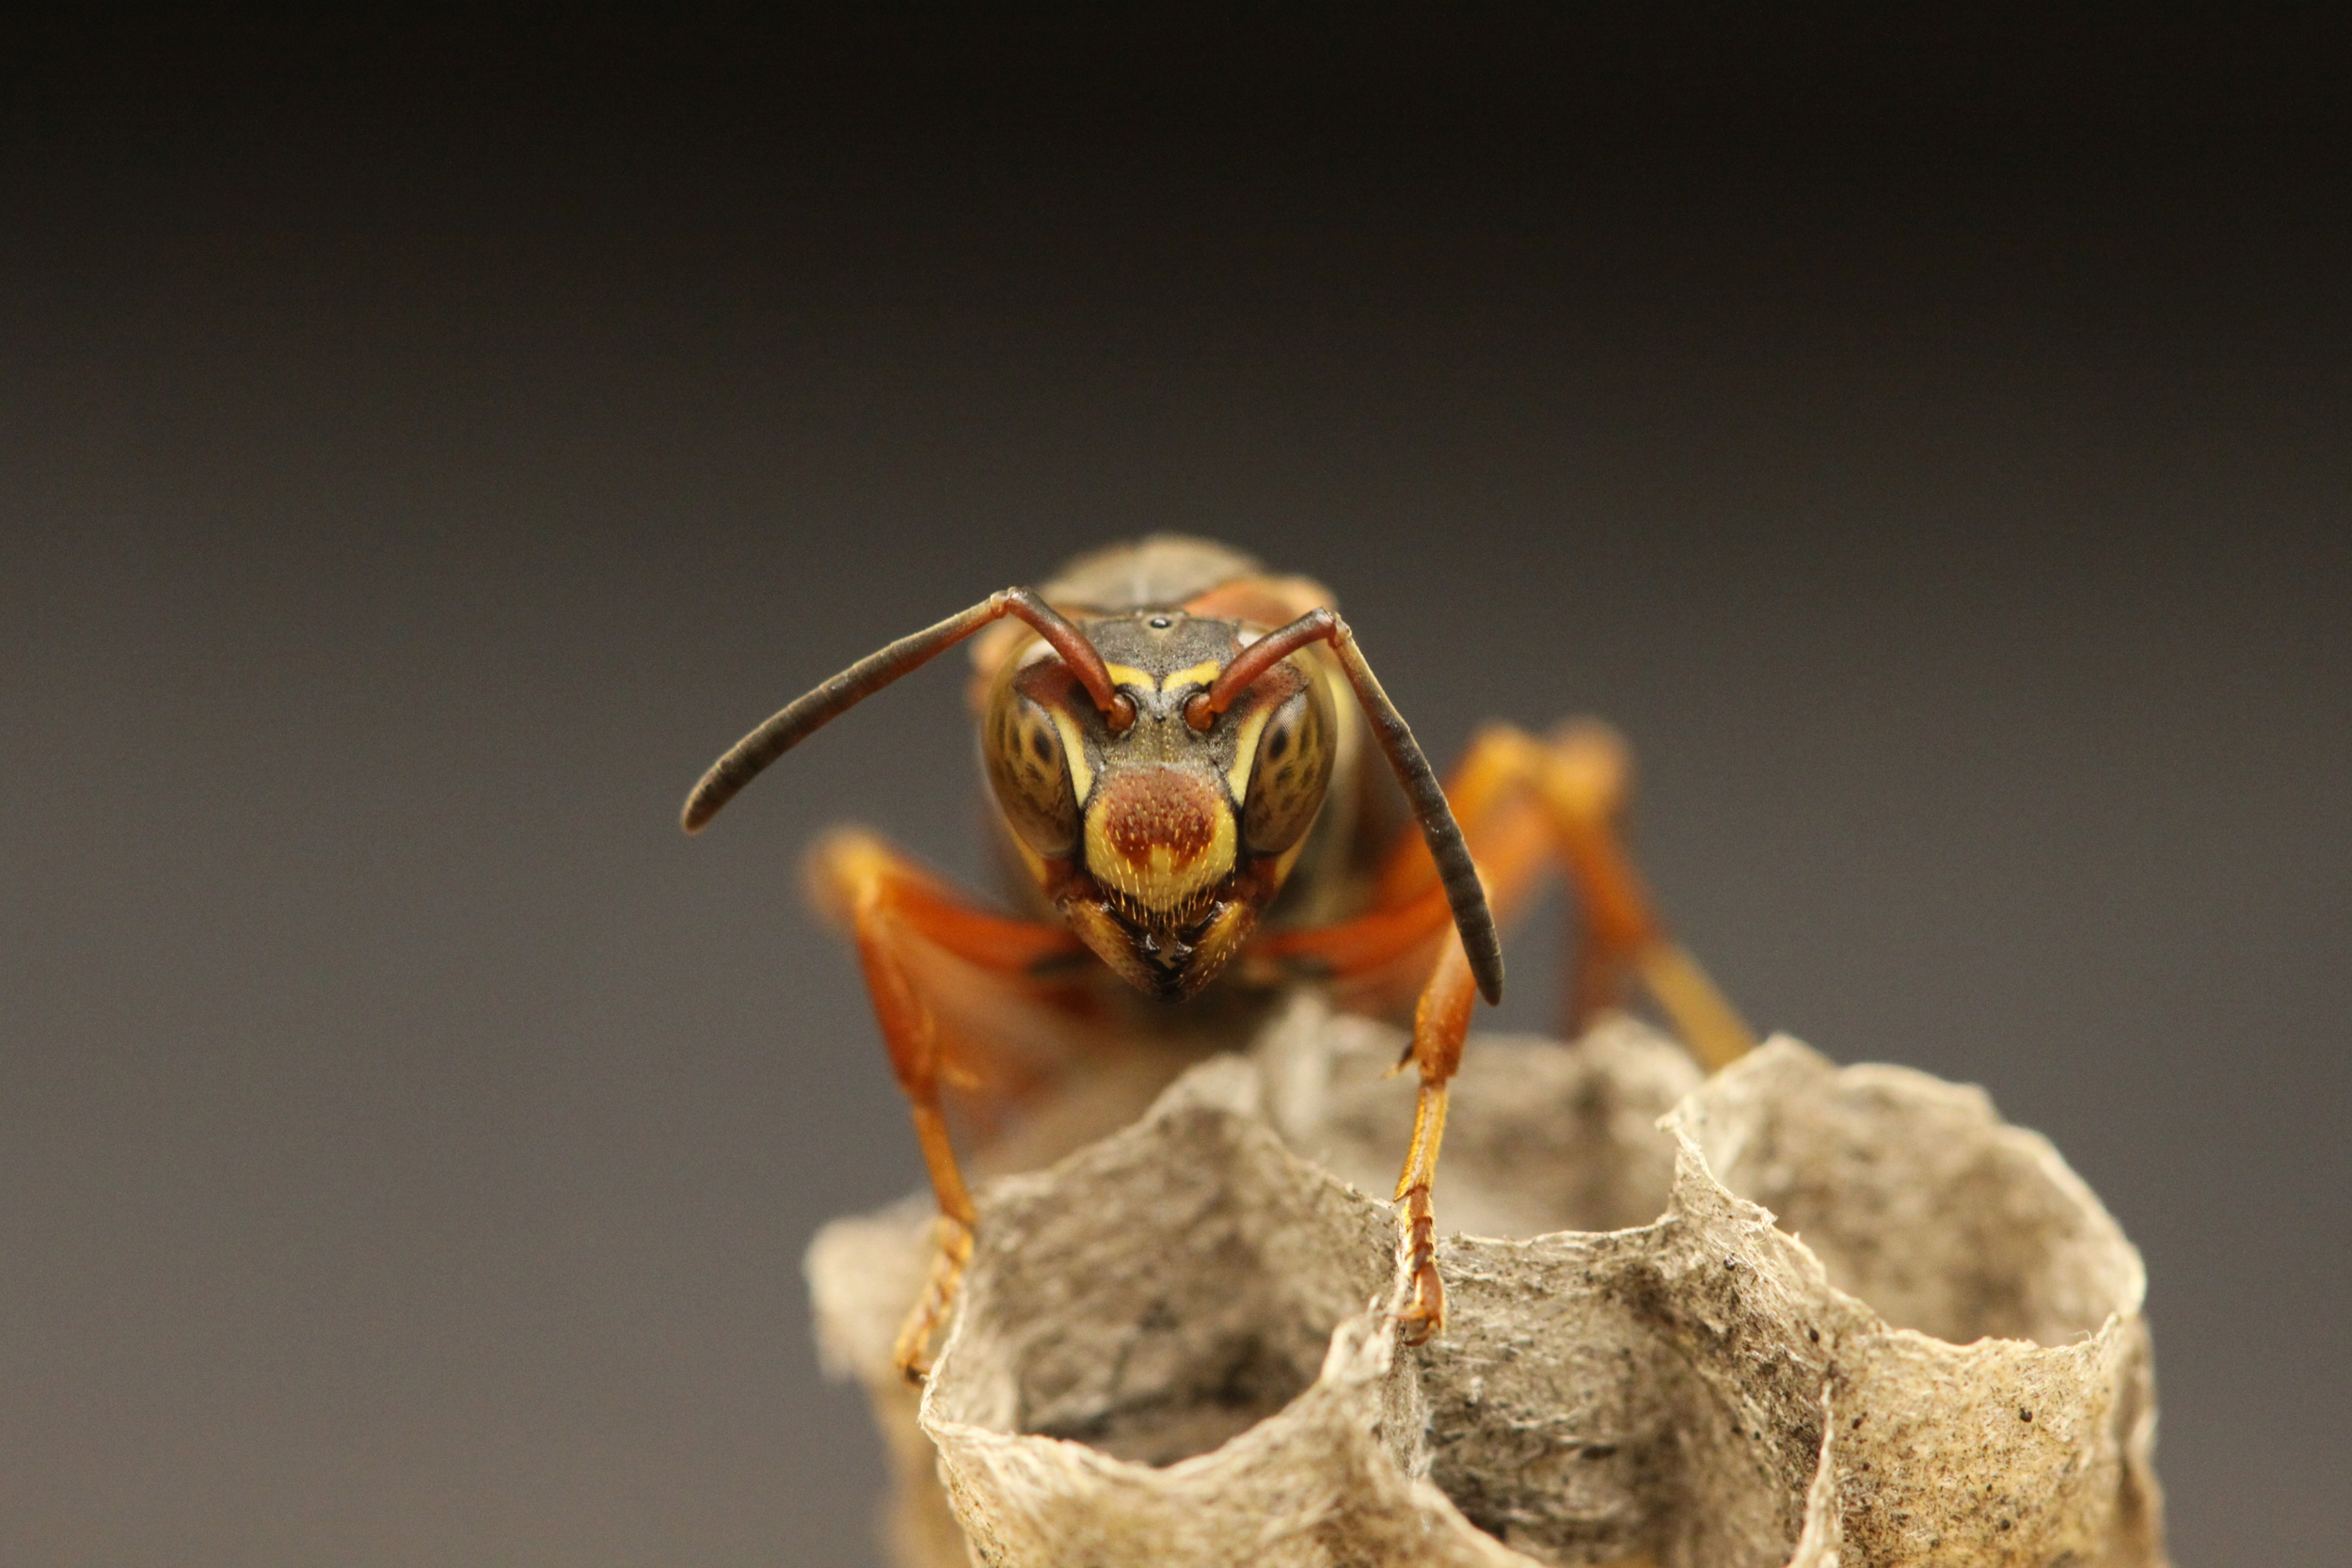 Like humans, Polistes fuscatus paper wasps recognize individuals by their unique facial patterns. This photo shows a paper wasp queen on an early nest. Credit: Michael Sheehan